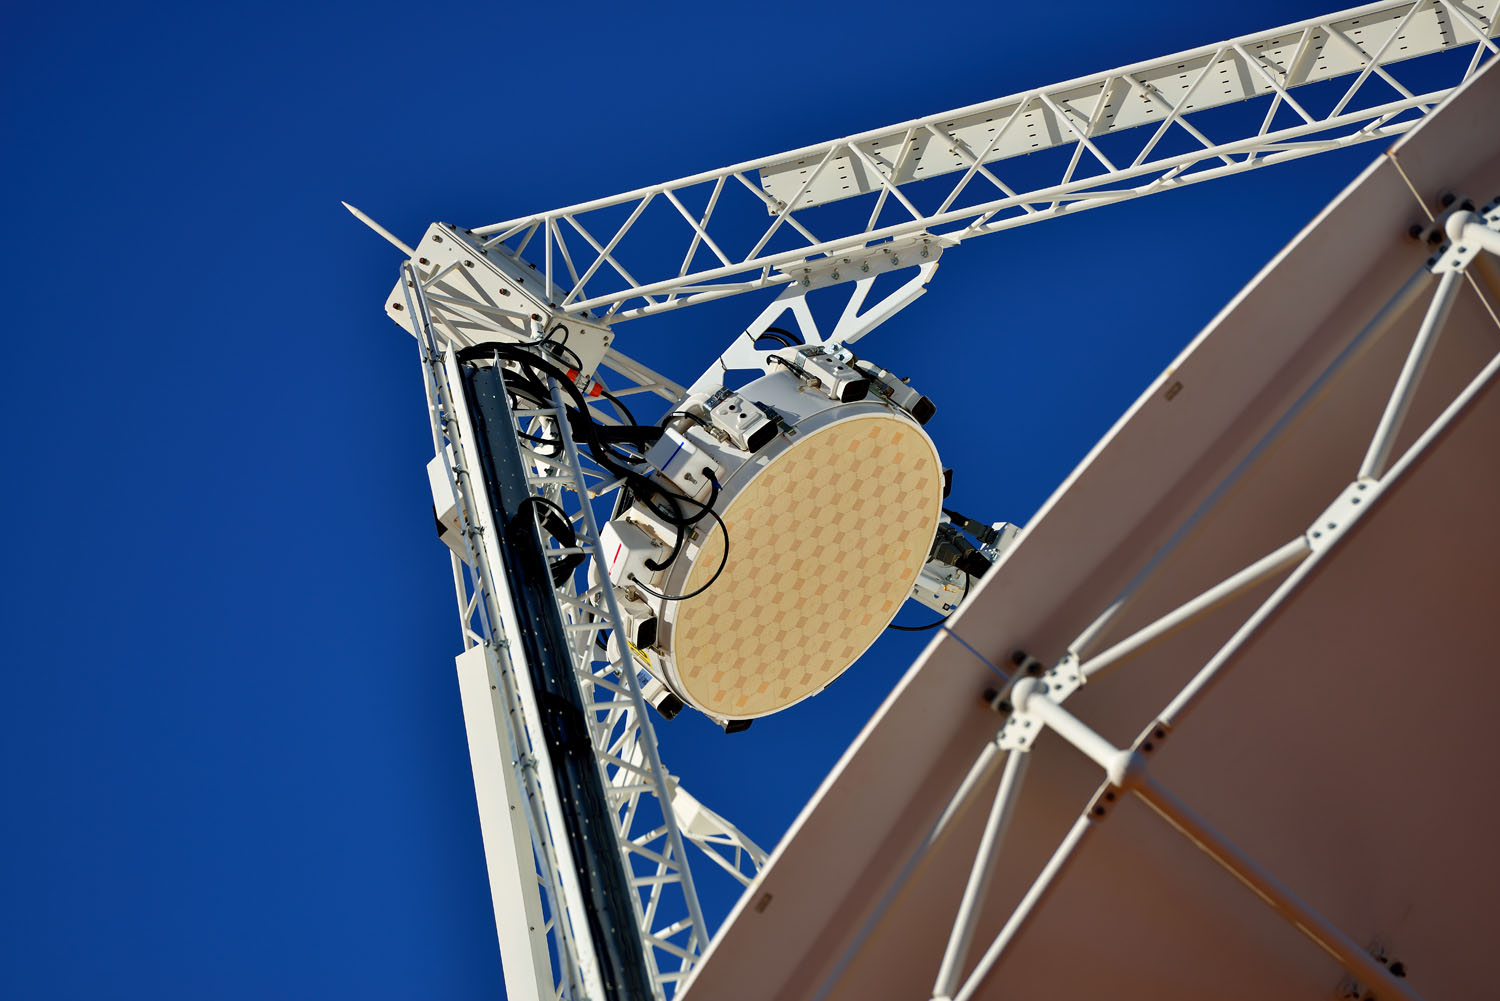 White circular object attached to the apex of a radio telescope antenna